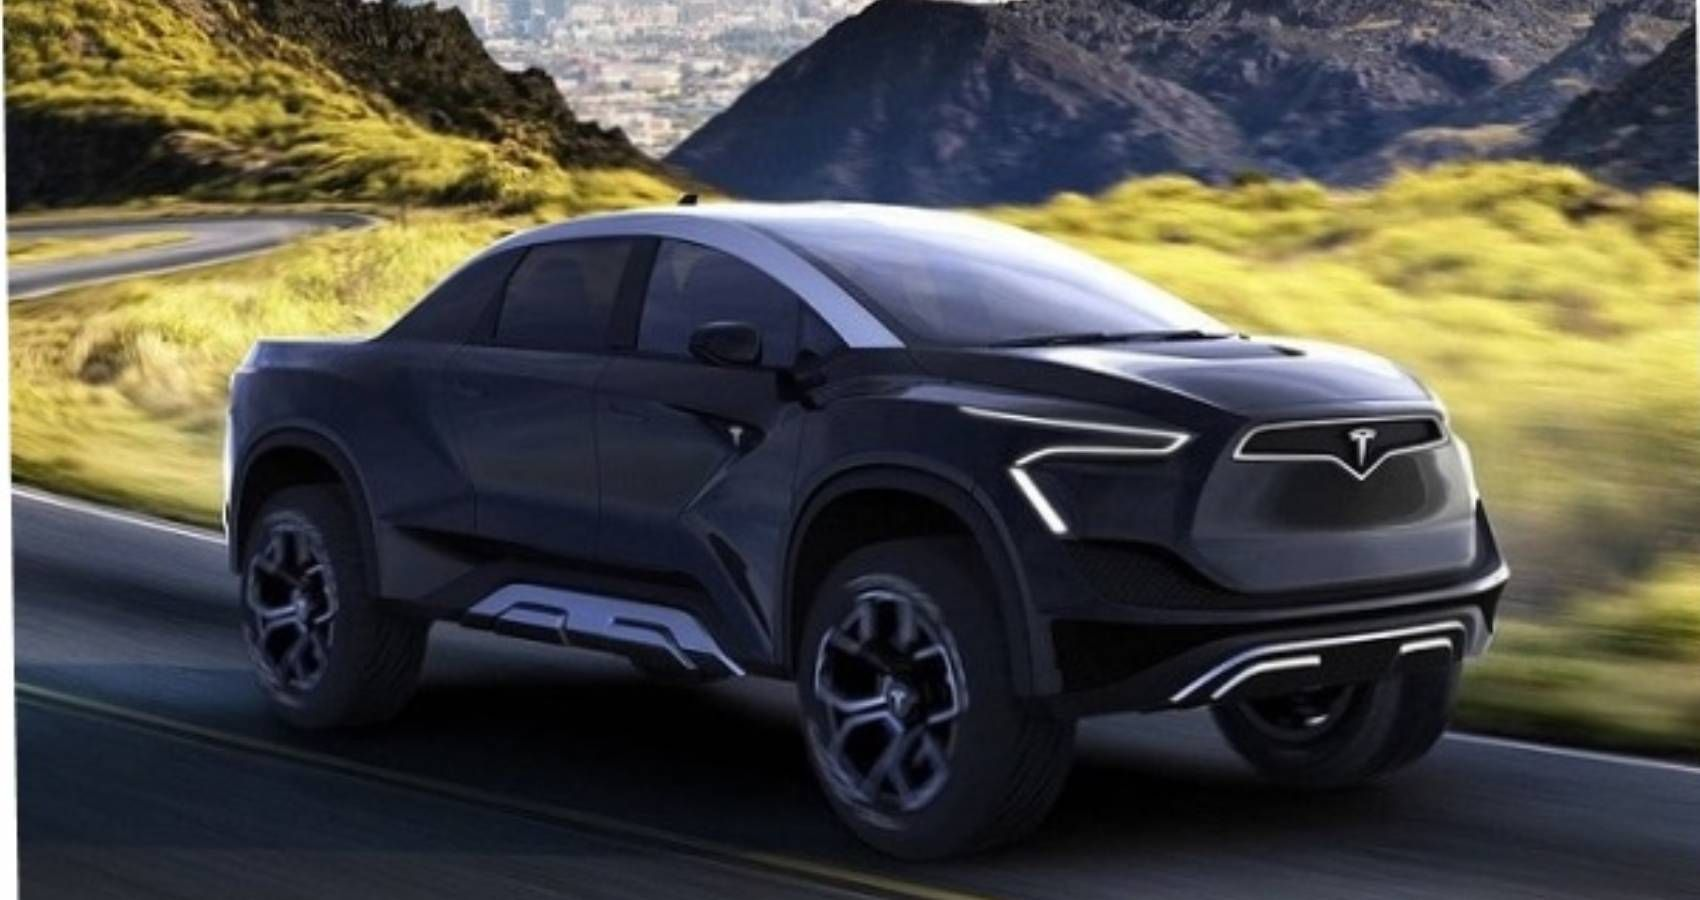 This Was A Vision For Tesla's Electric Pickup Before The Cybertruck Arrived